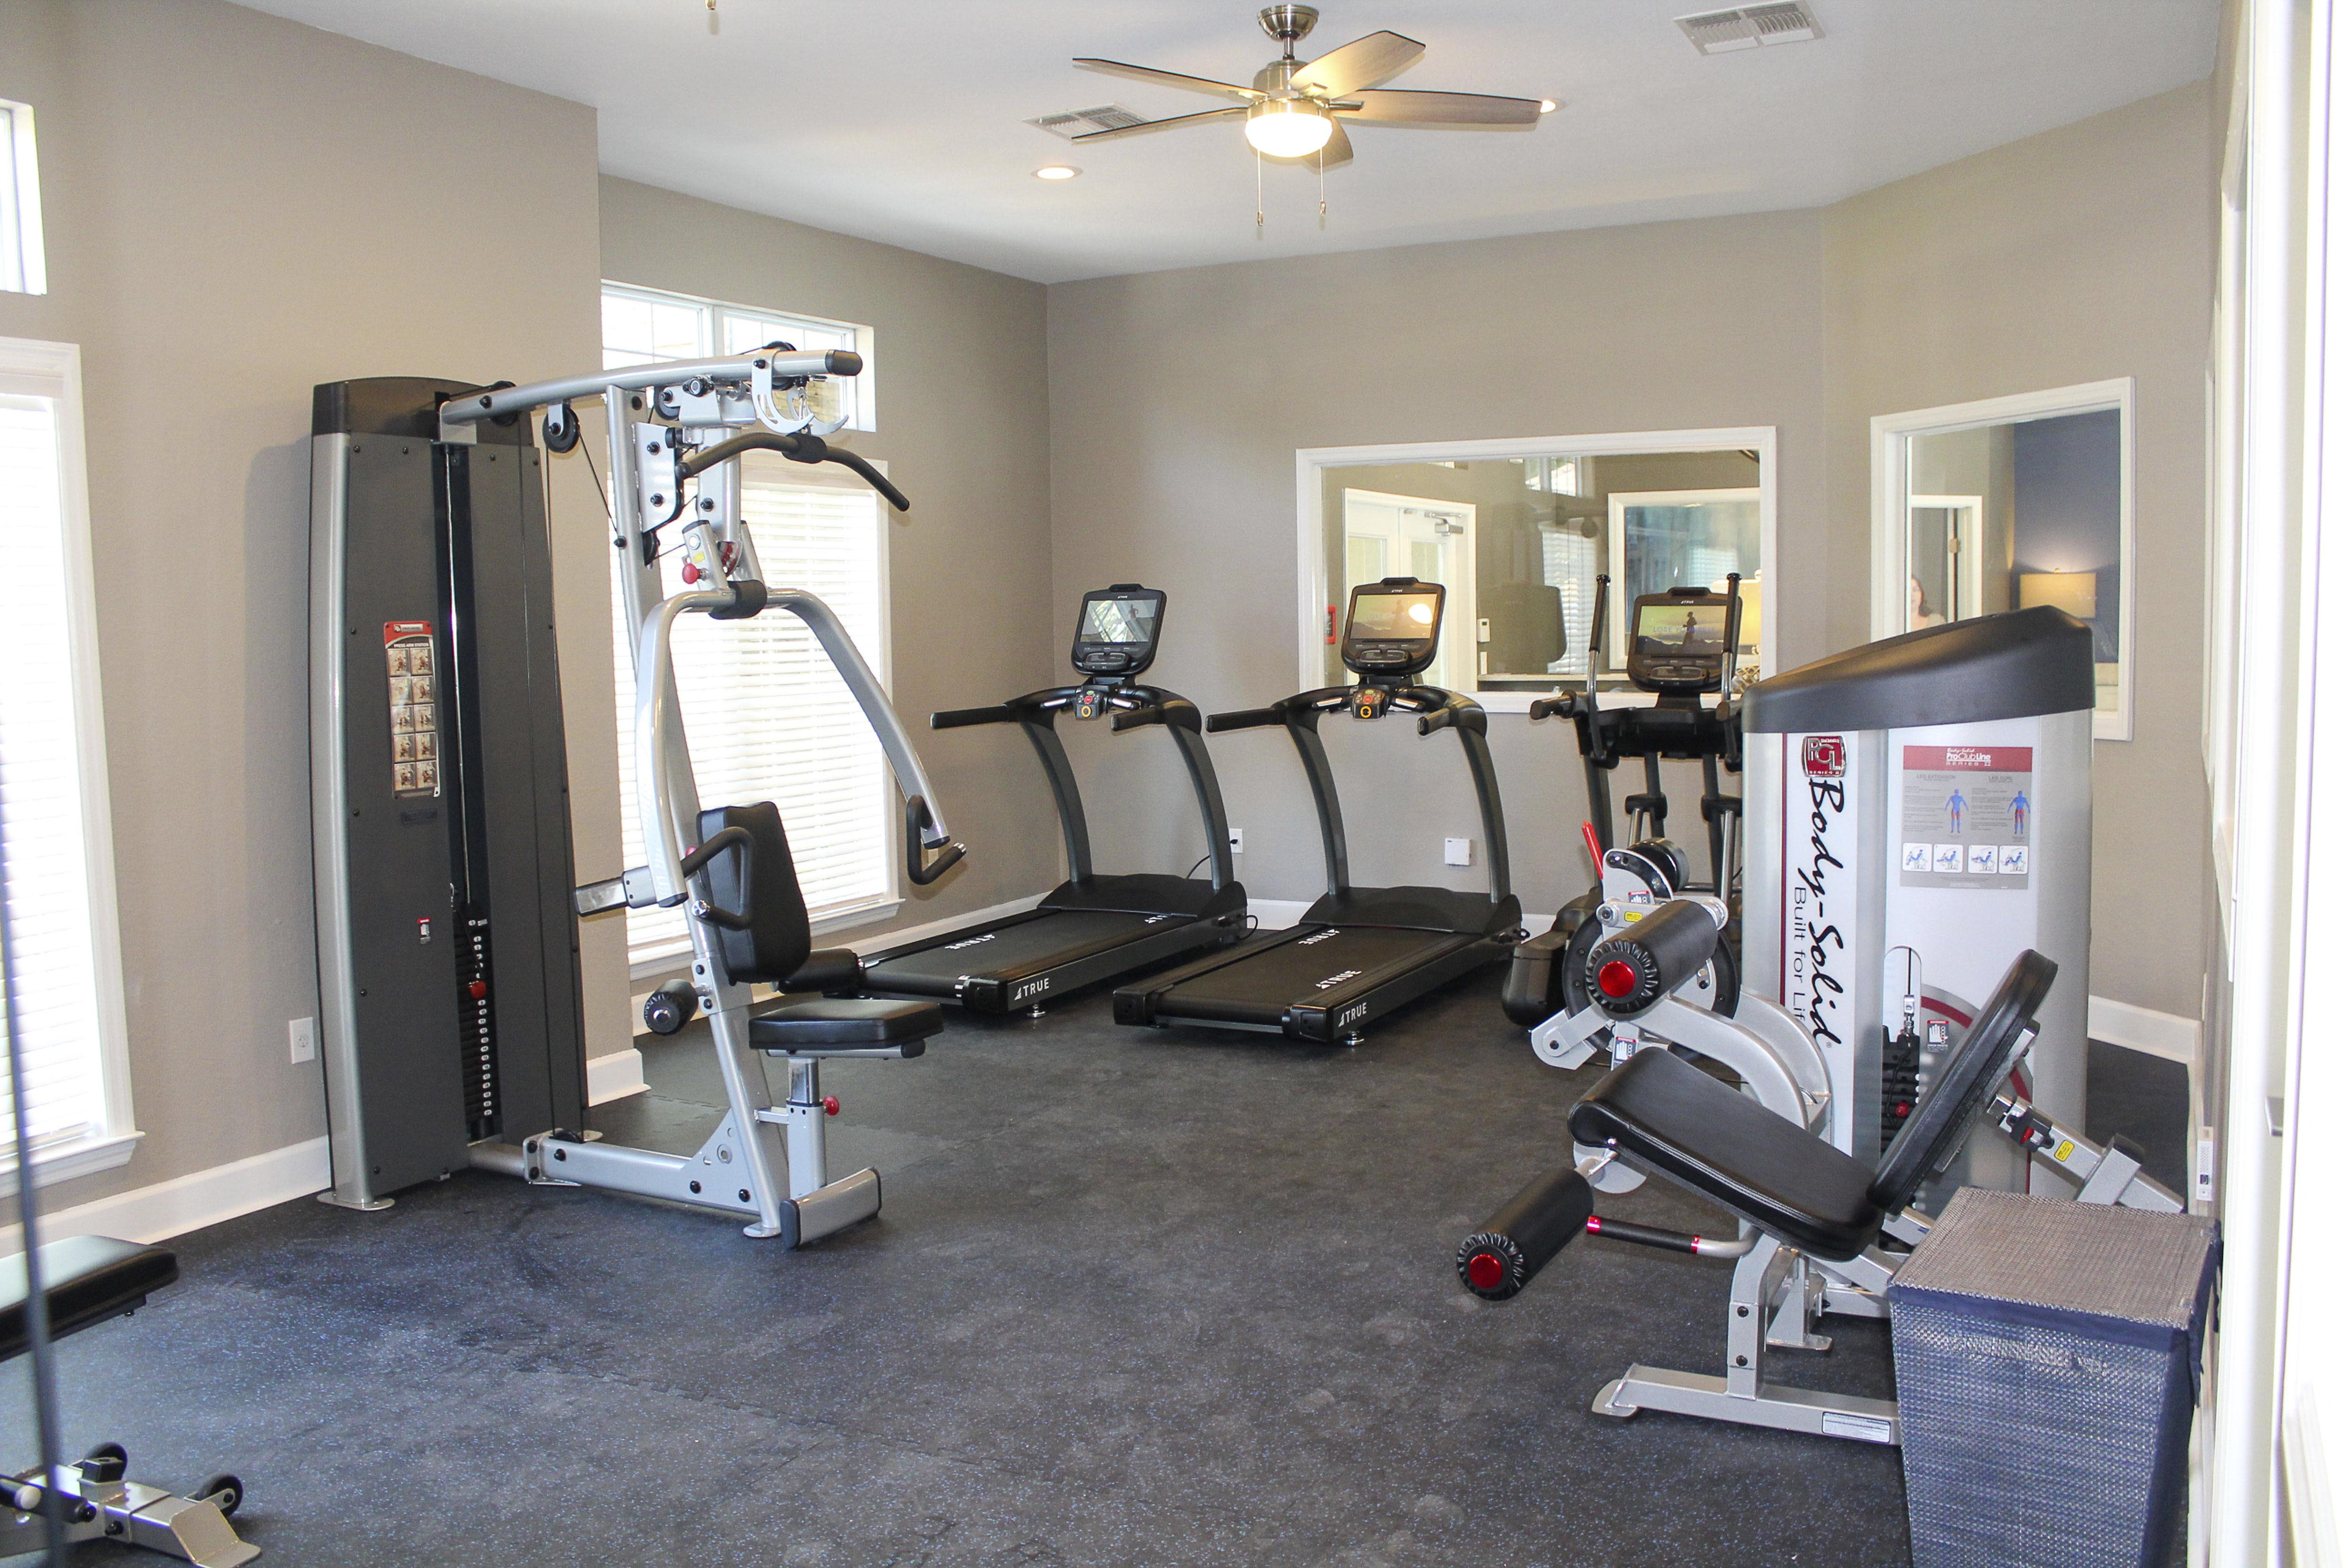 Fully-equipped fitness center with free-weights, treadmills, mounted TVs and elliptical machines